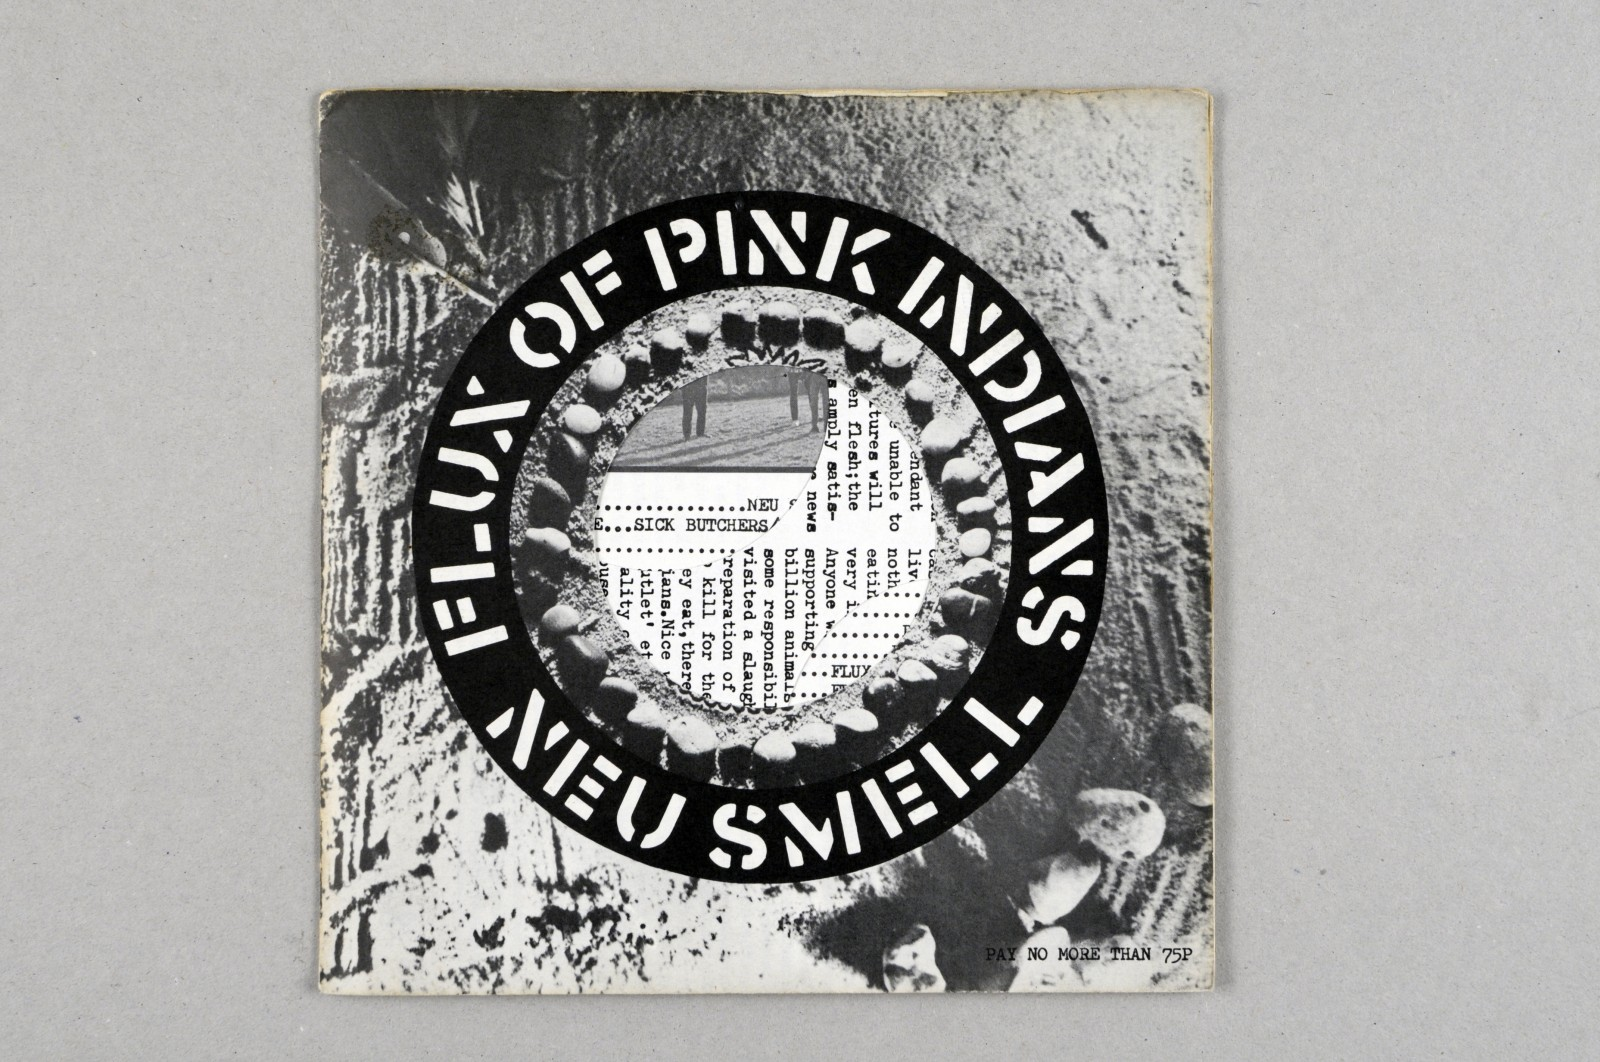 LA COLLECTION expo read into my black holes CRASS FLUX OF PINK INDIANS NEU SMELL